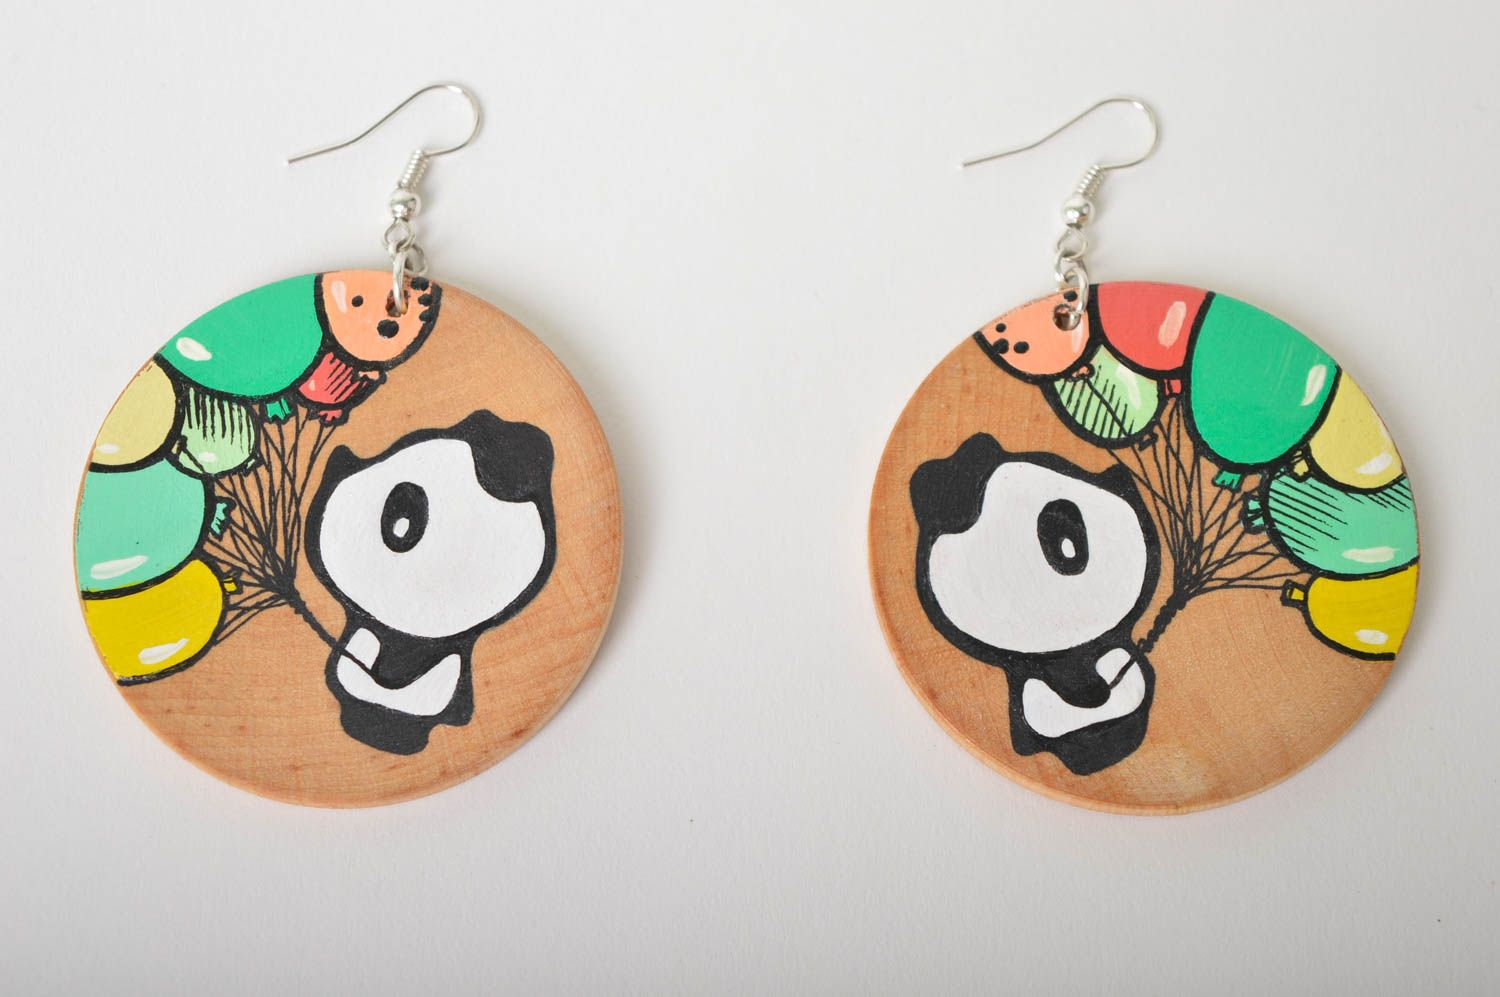 Wooden earrings handmade round earrings cute painted earrings with pandas photo 2